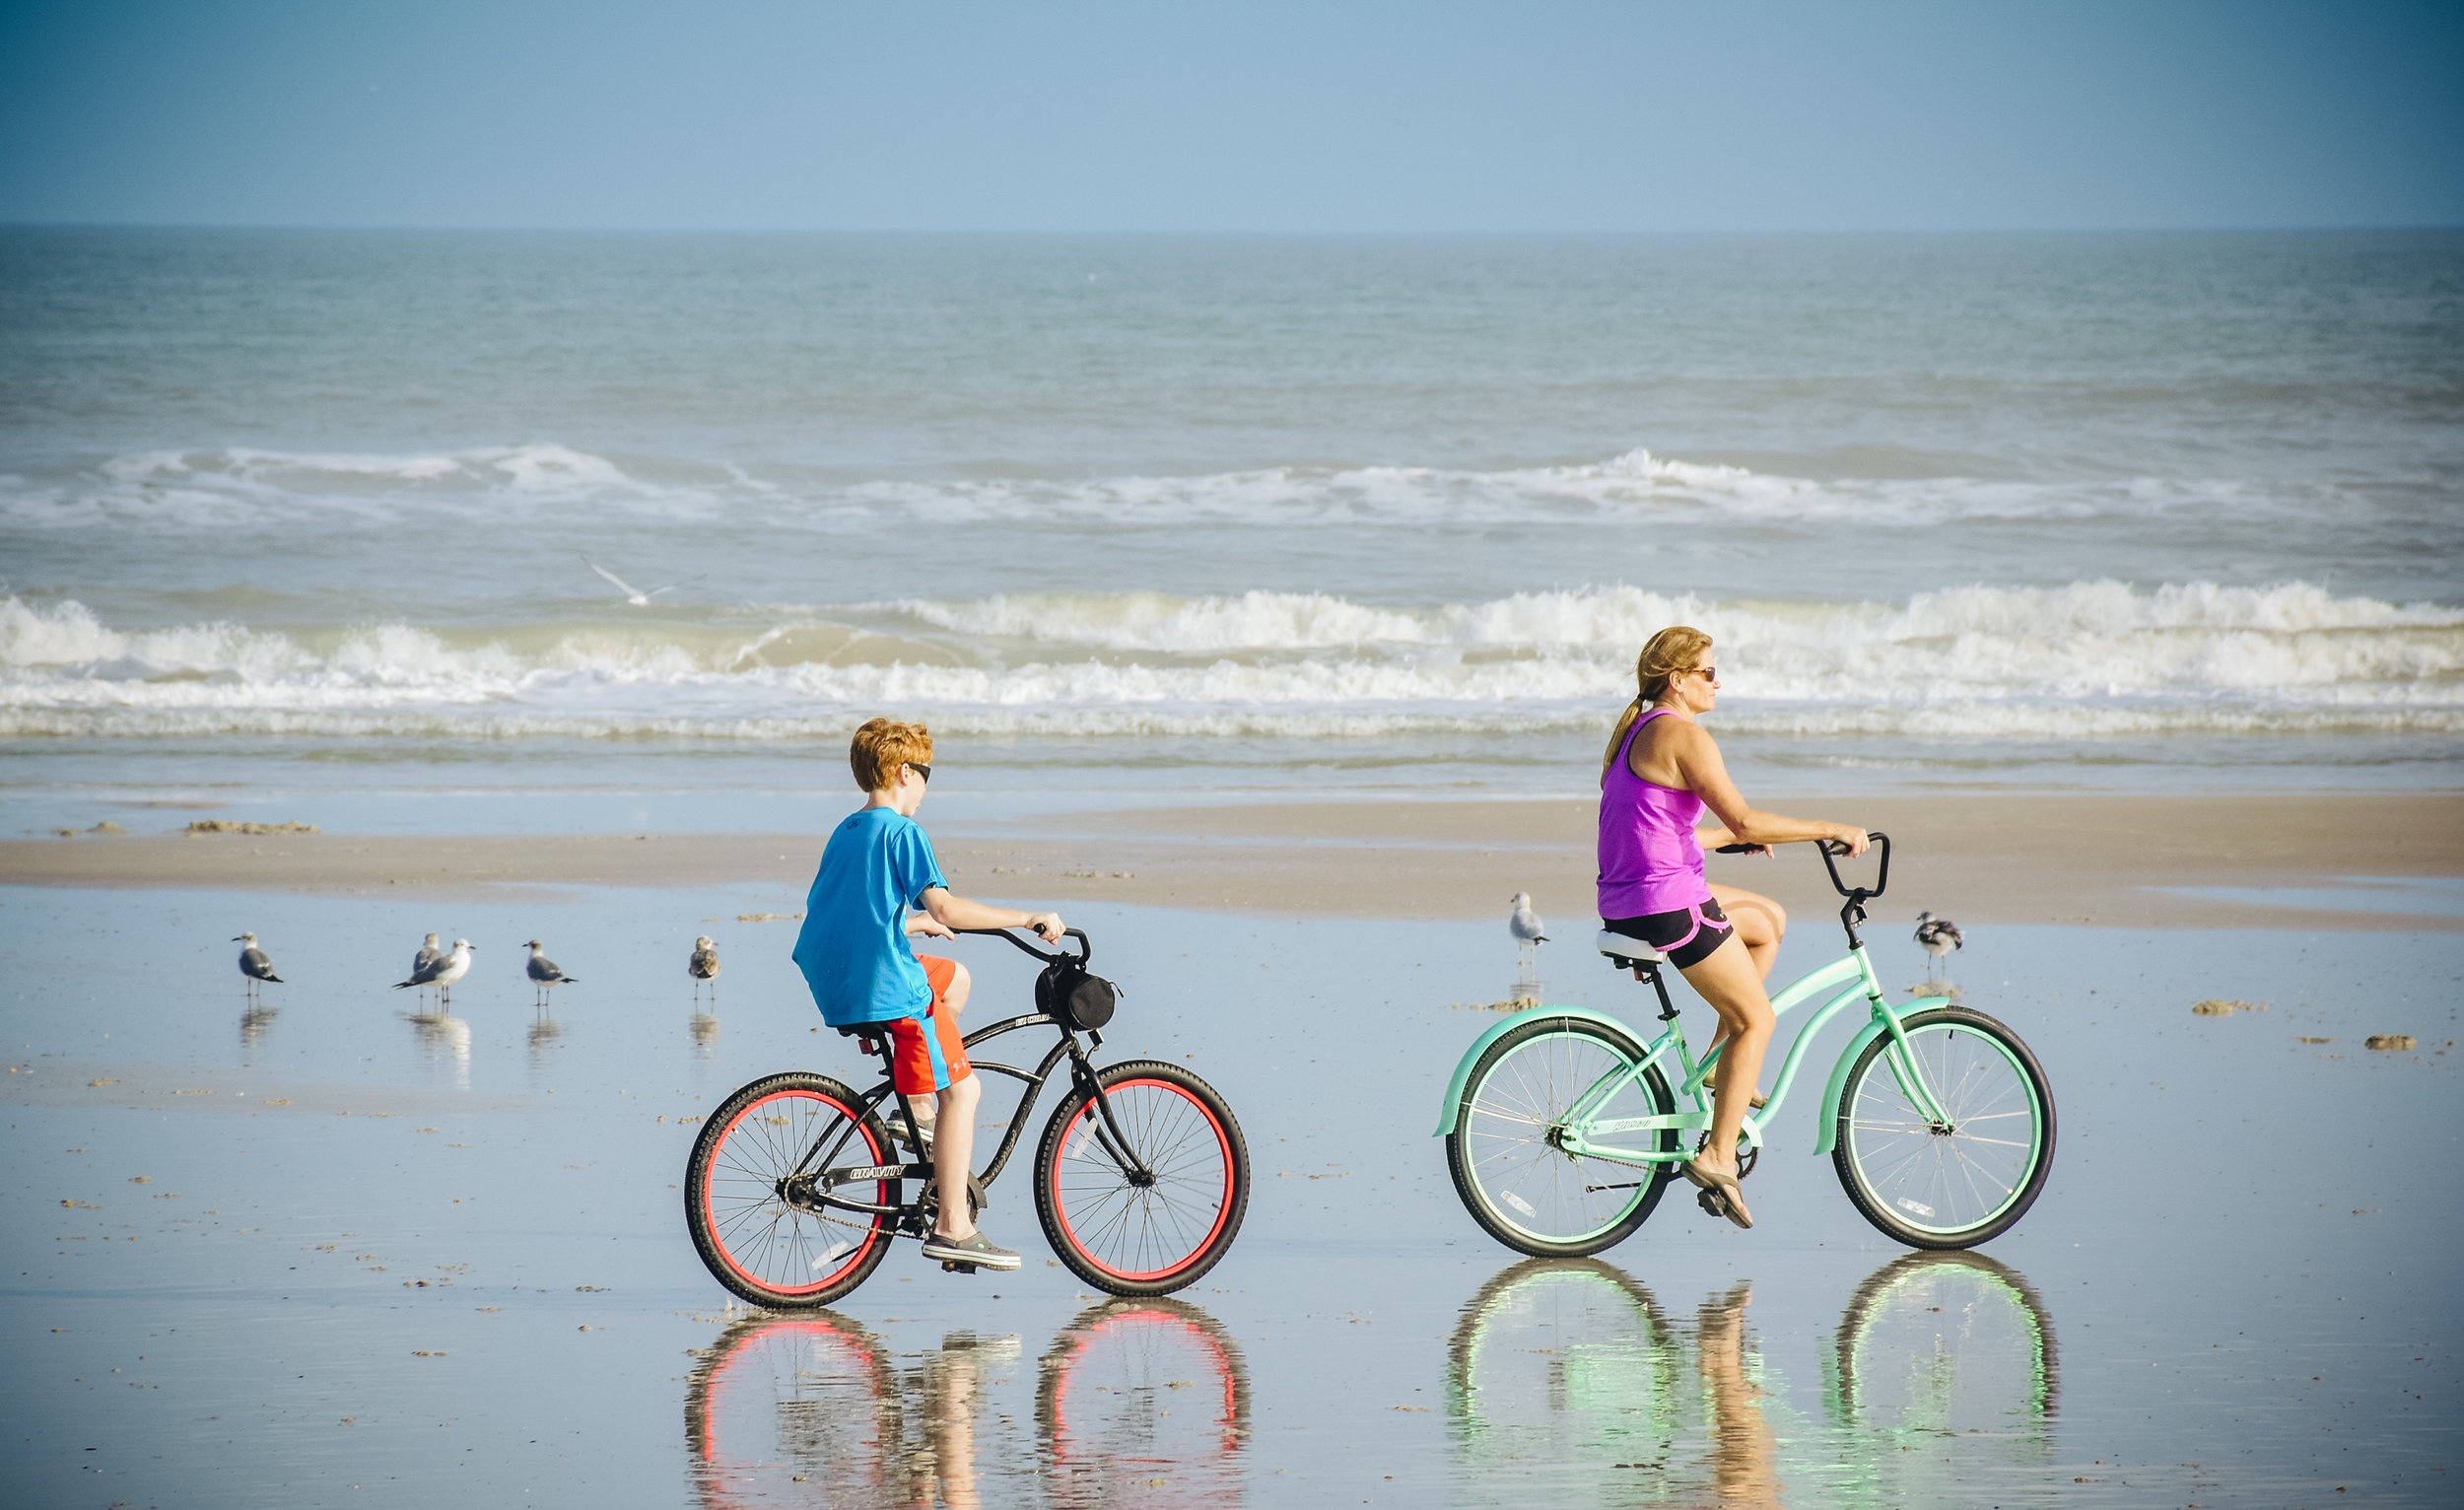 A mother and son cycled leisurely along the shore in Jacksonville, FL.